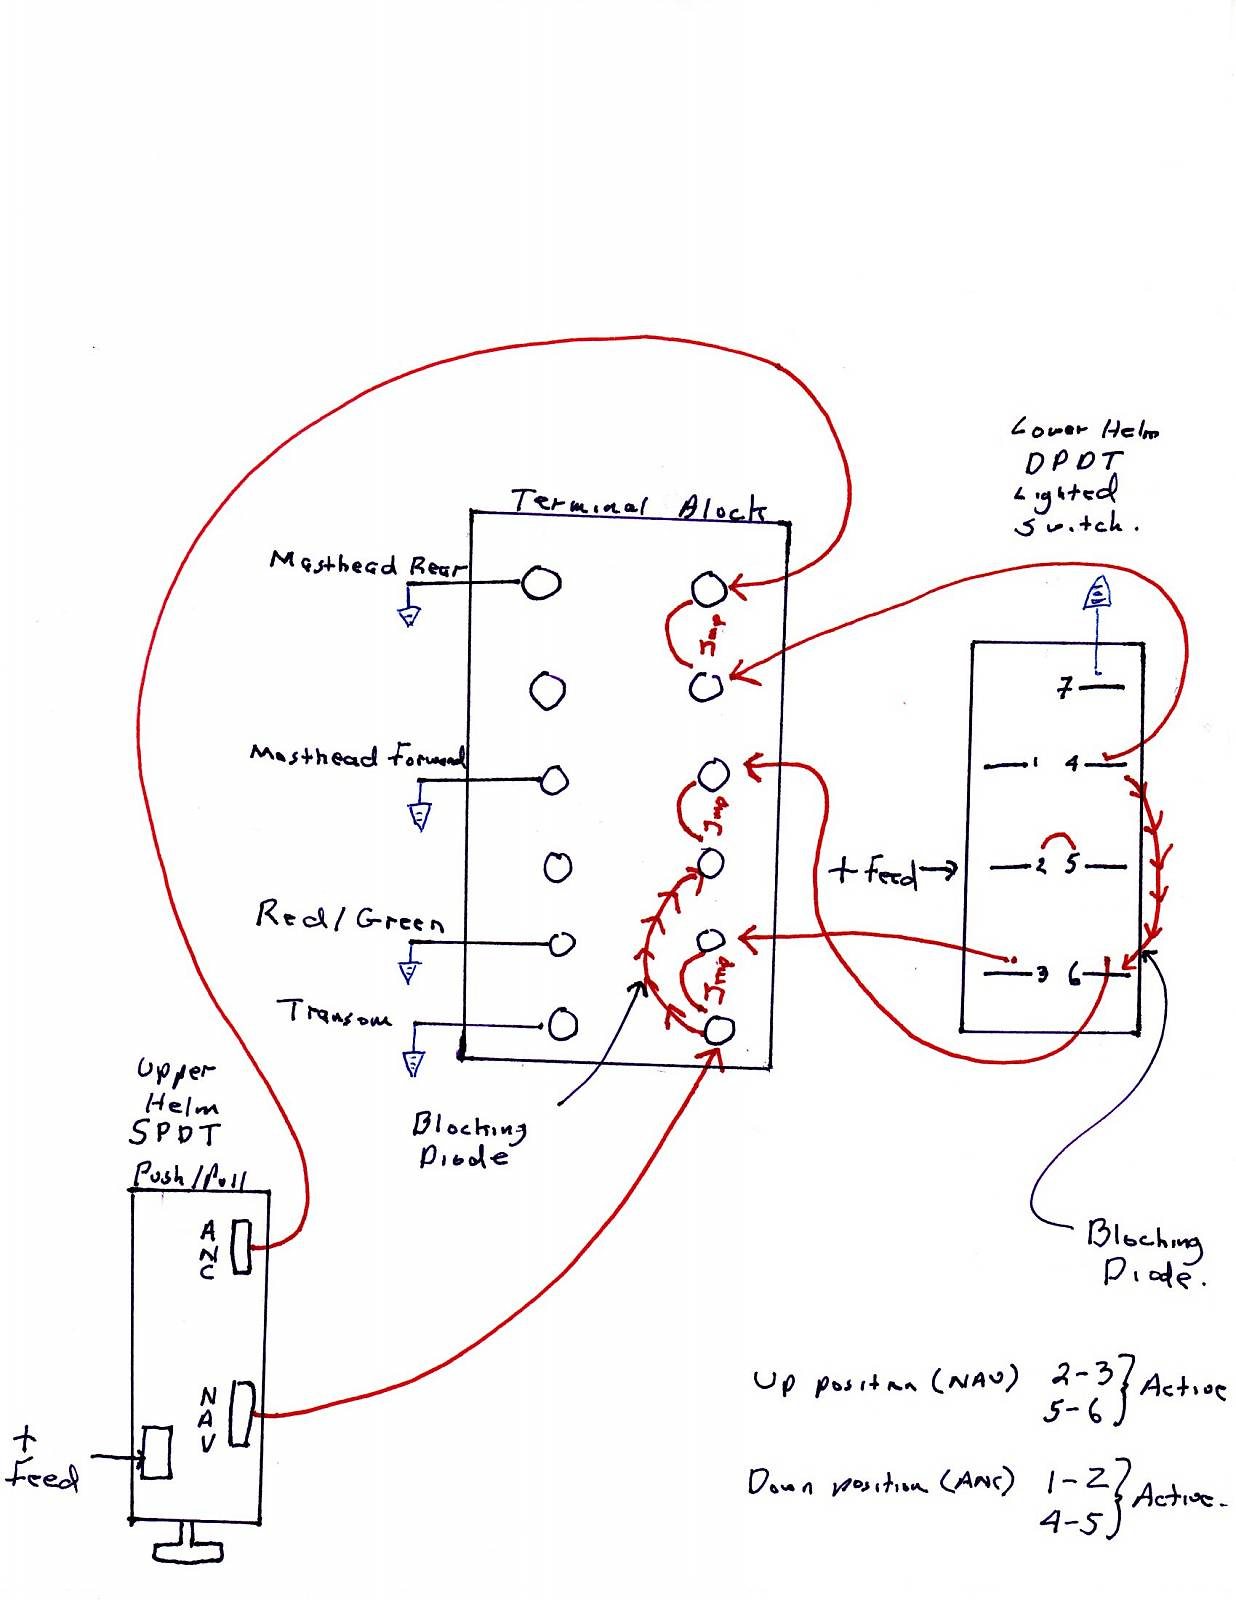 navigation light wiring for dual stations boat design net Basic Electrical Wiring Diagrams at aneh.co